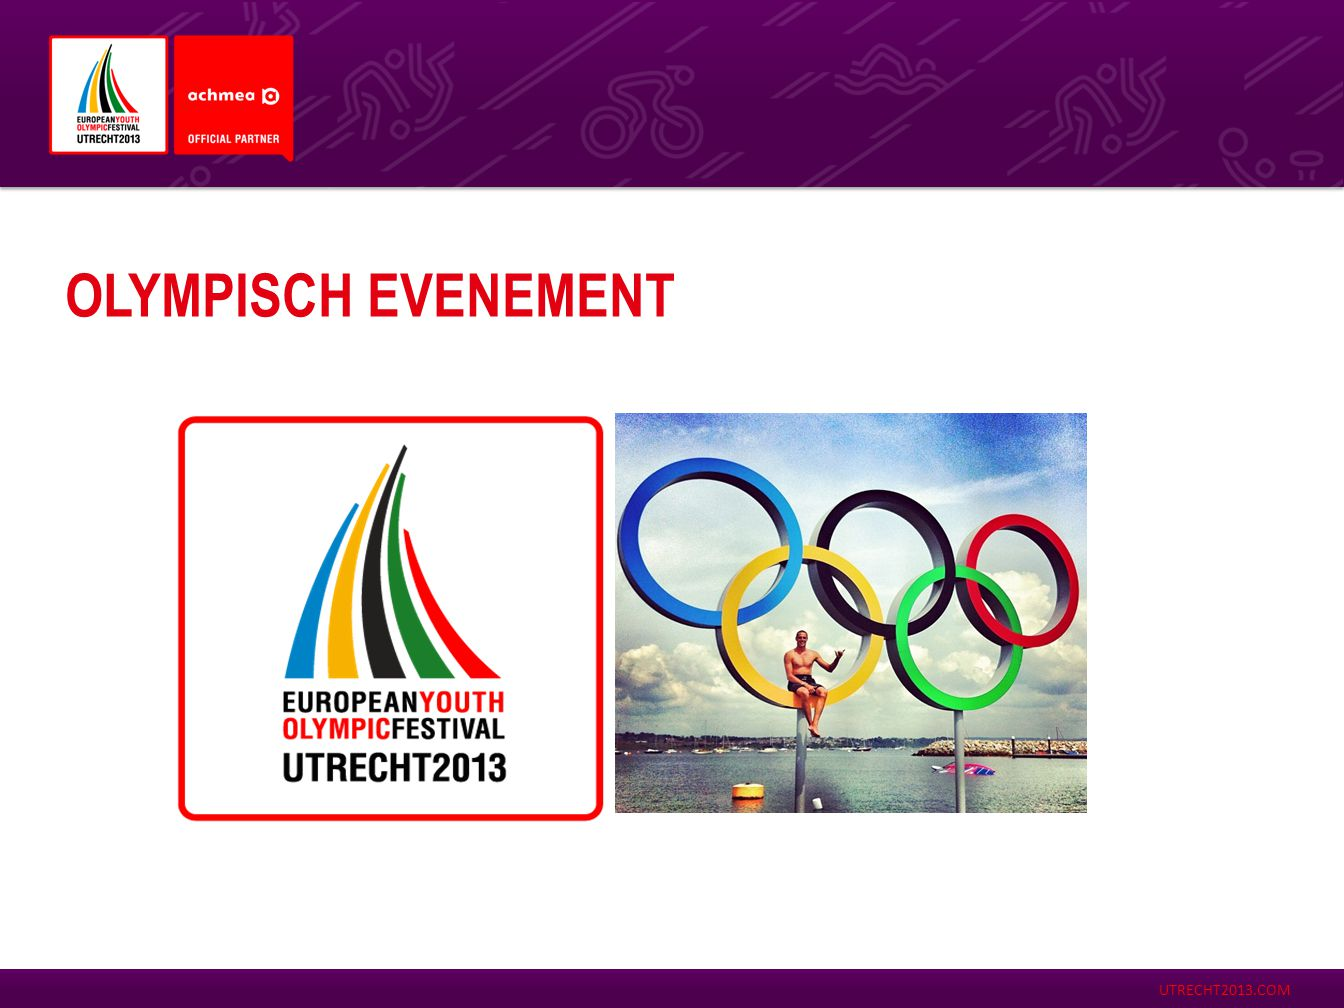 Olympisch evenement - Olympisch evenement